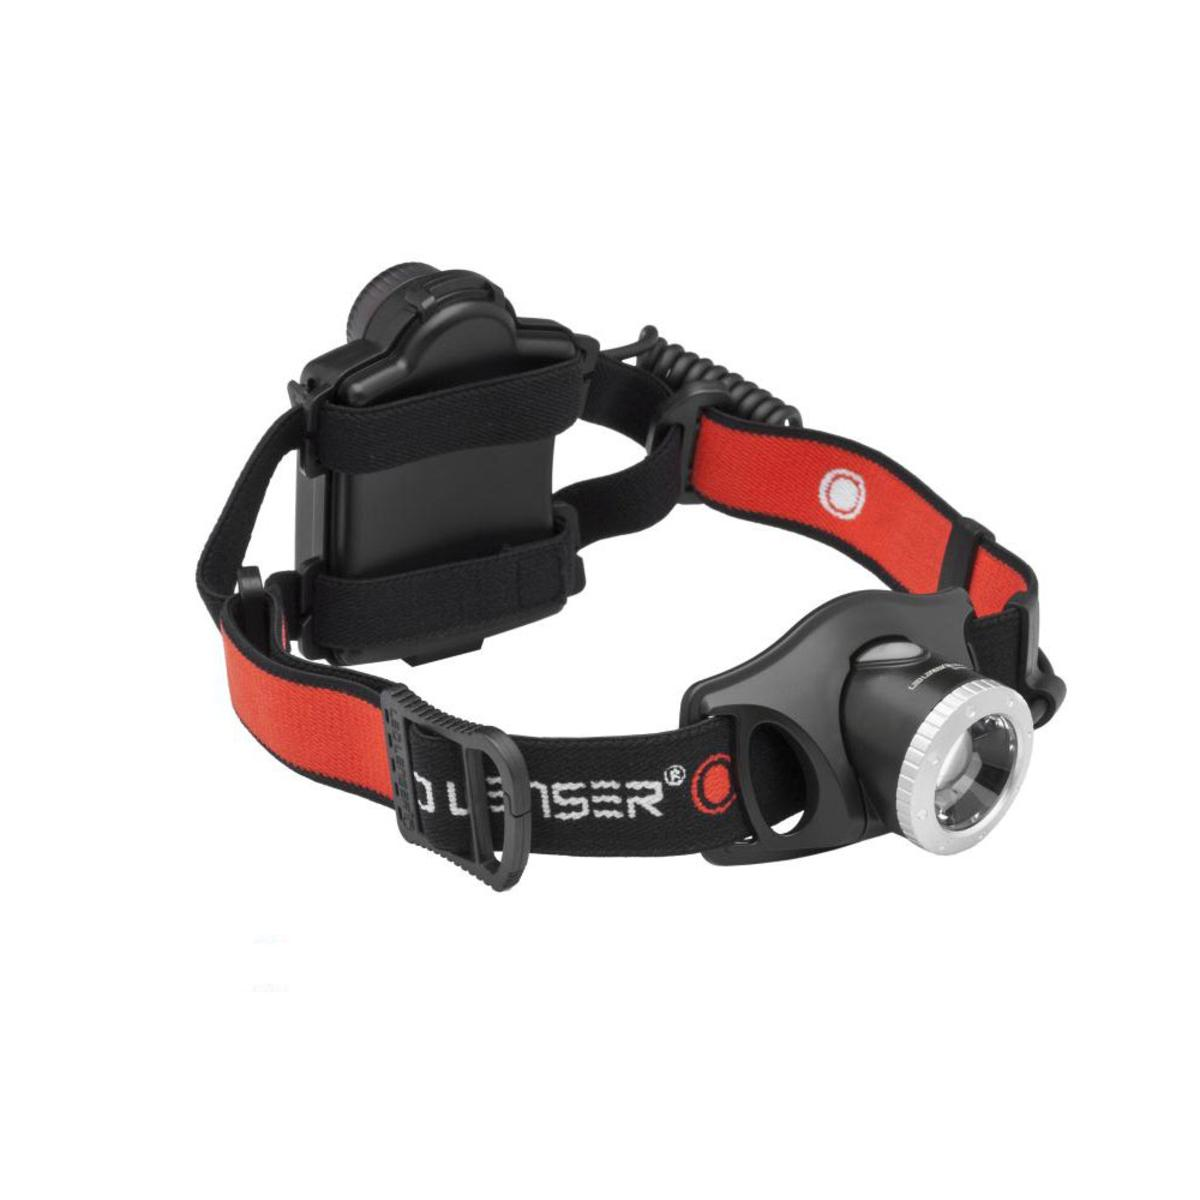 Camping & Outdoor Clamshell Packaging LEDLENSER H14R.2 Rechargeable Headlamp